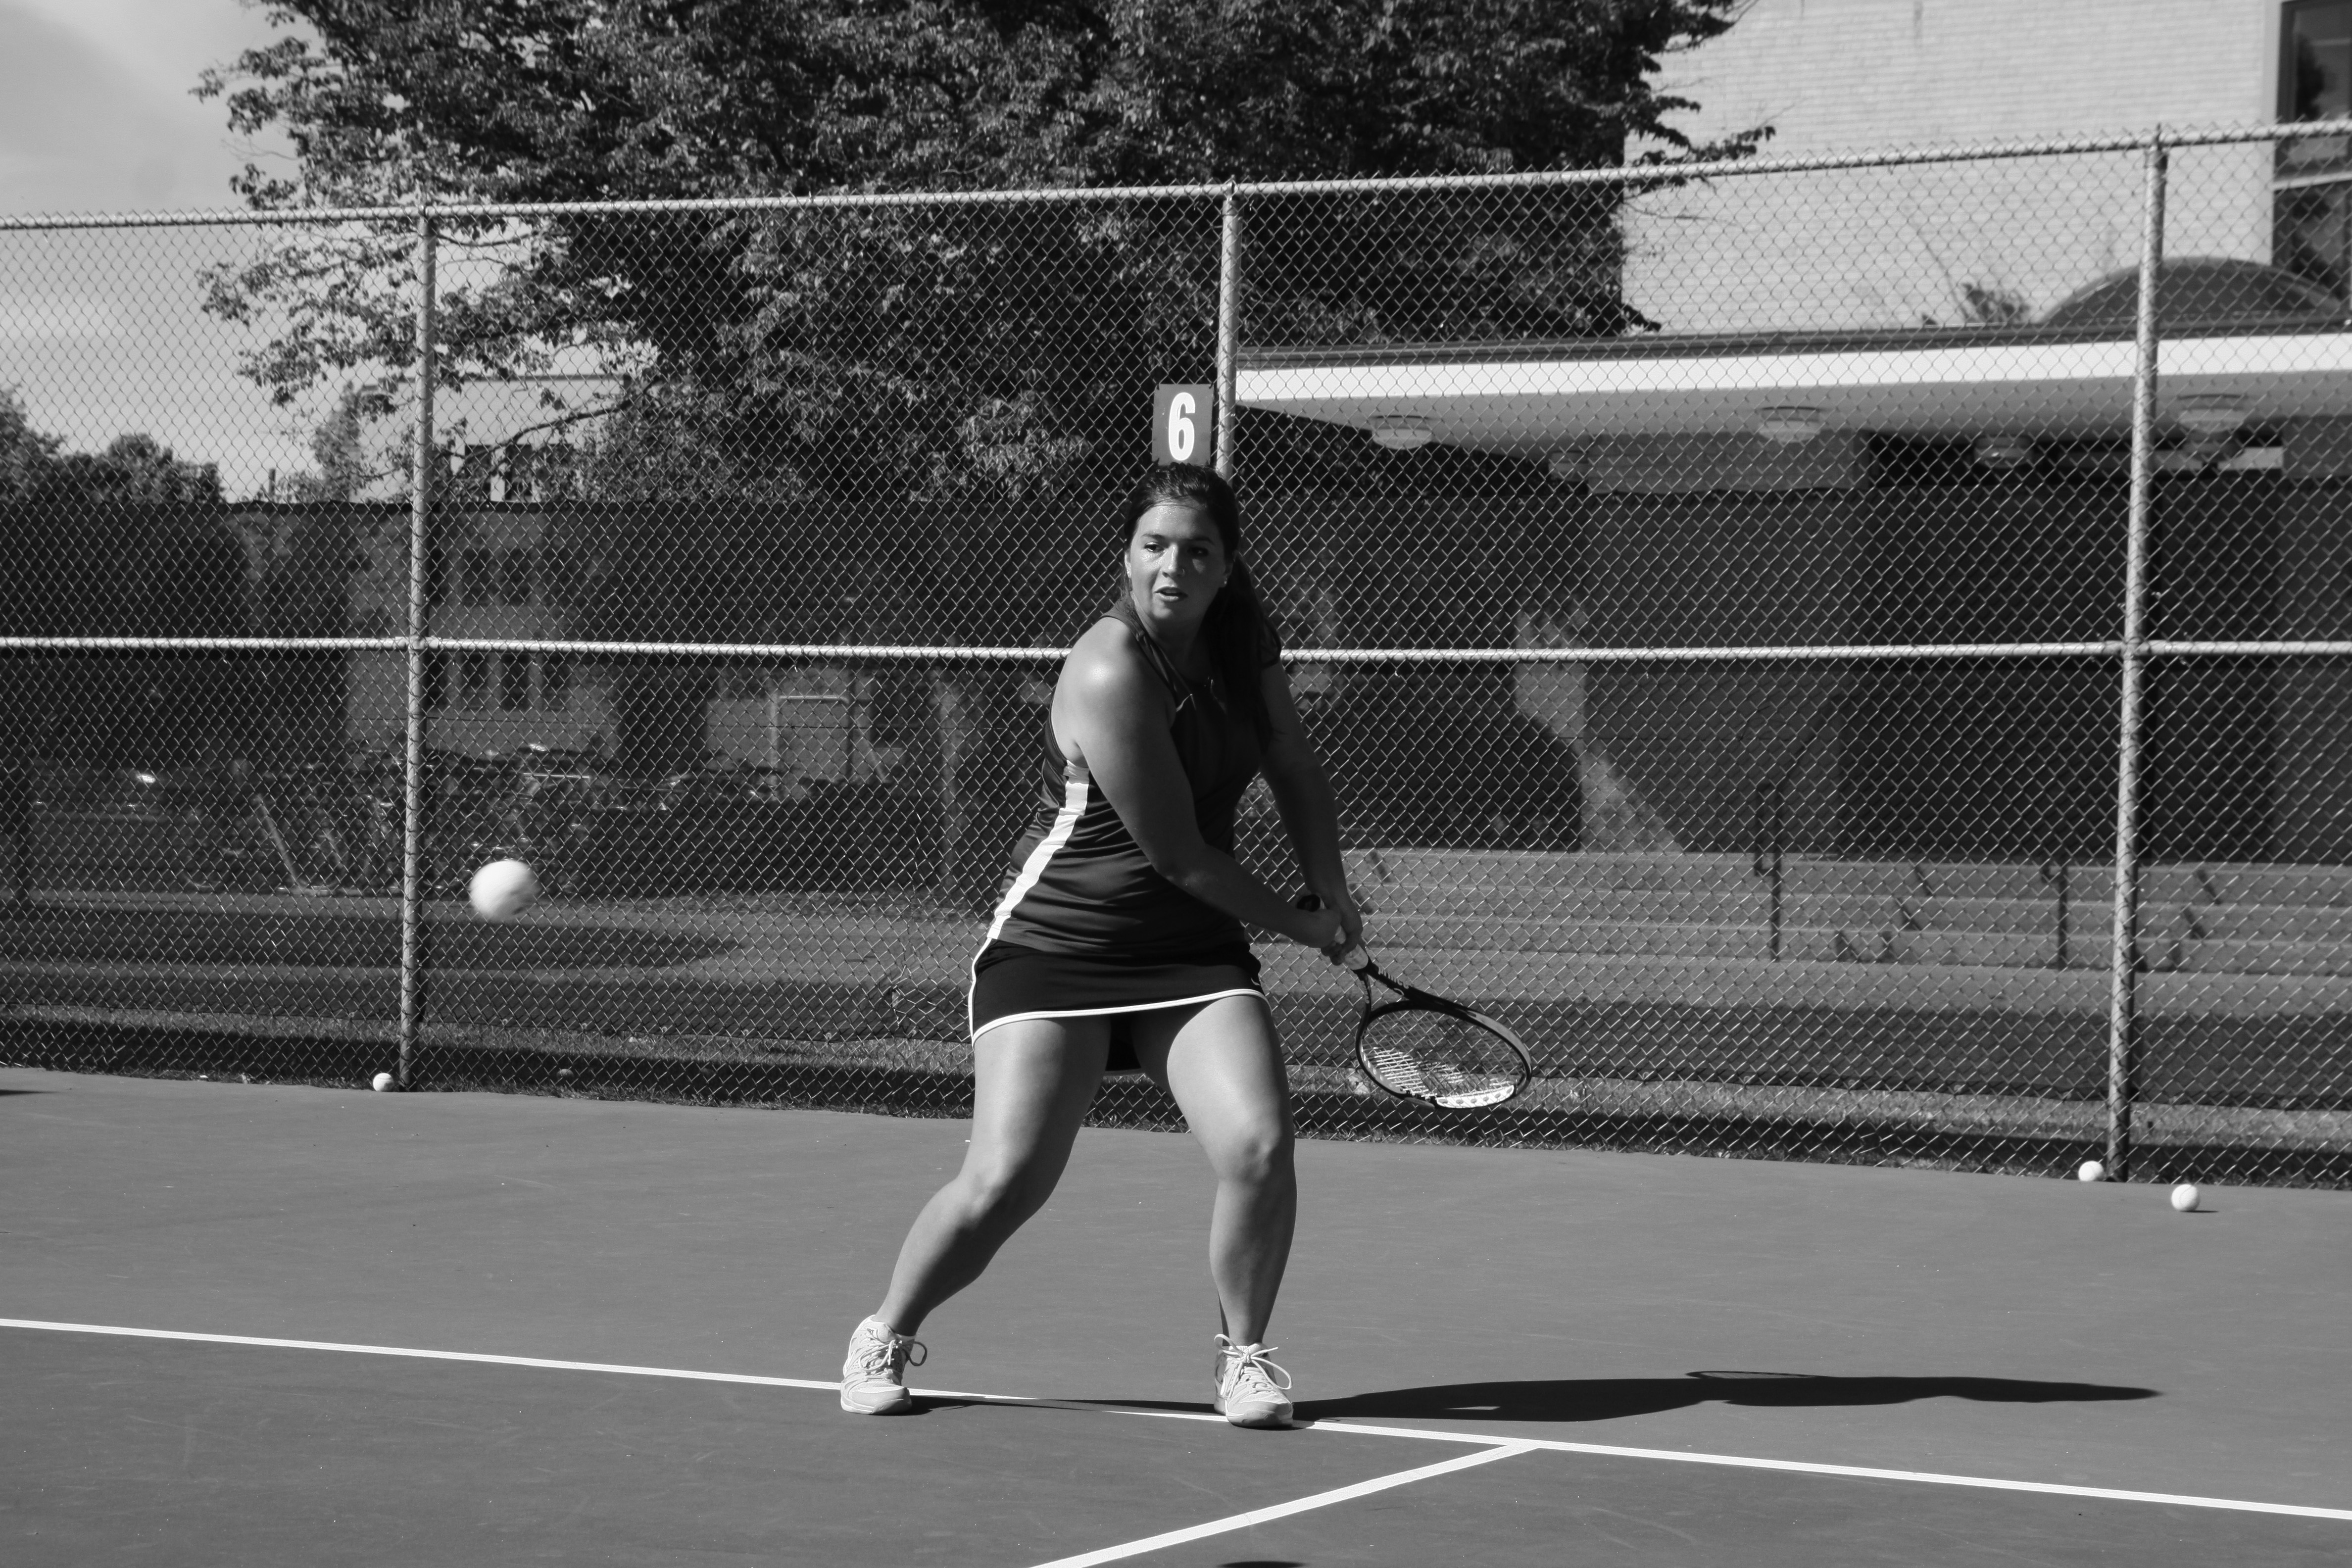 Black and white image of Maria Thomas preparing to hit the ball in a tennis match